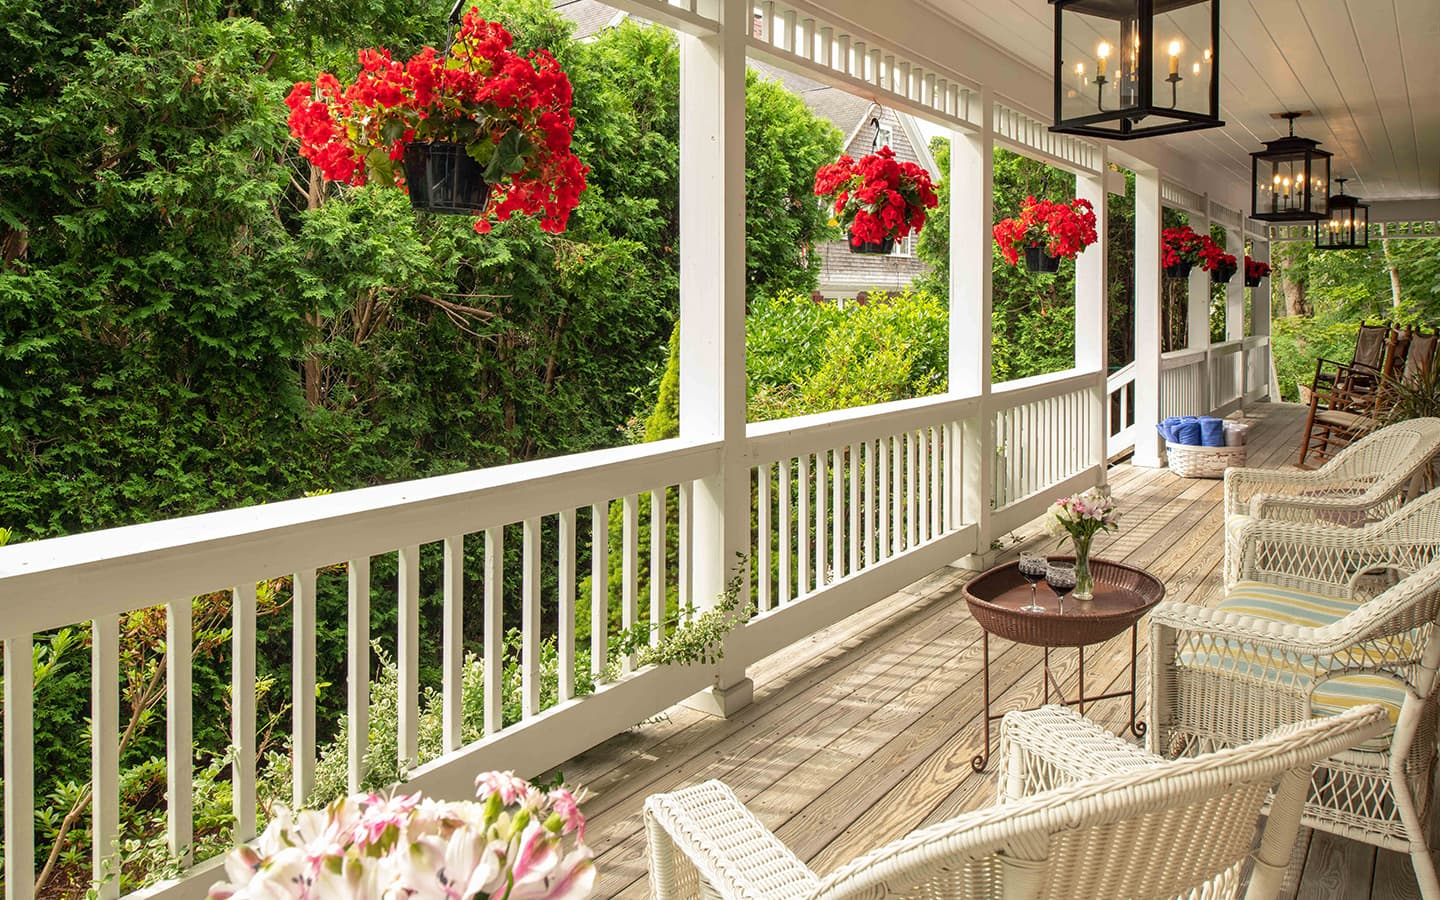 Peaceful porch perfect for proposals